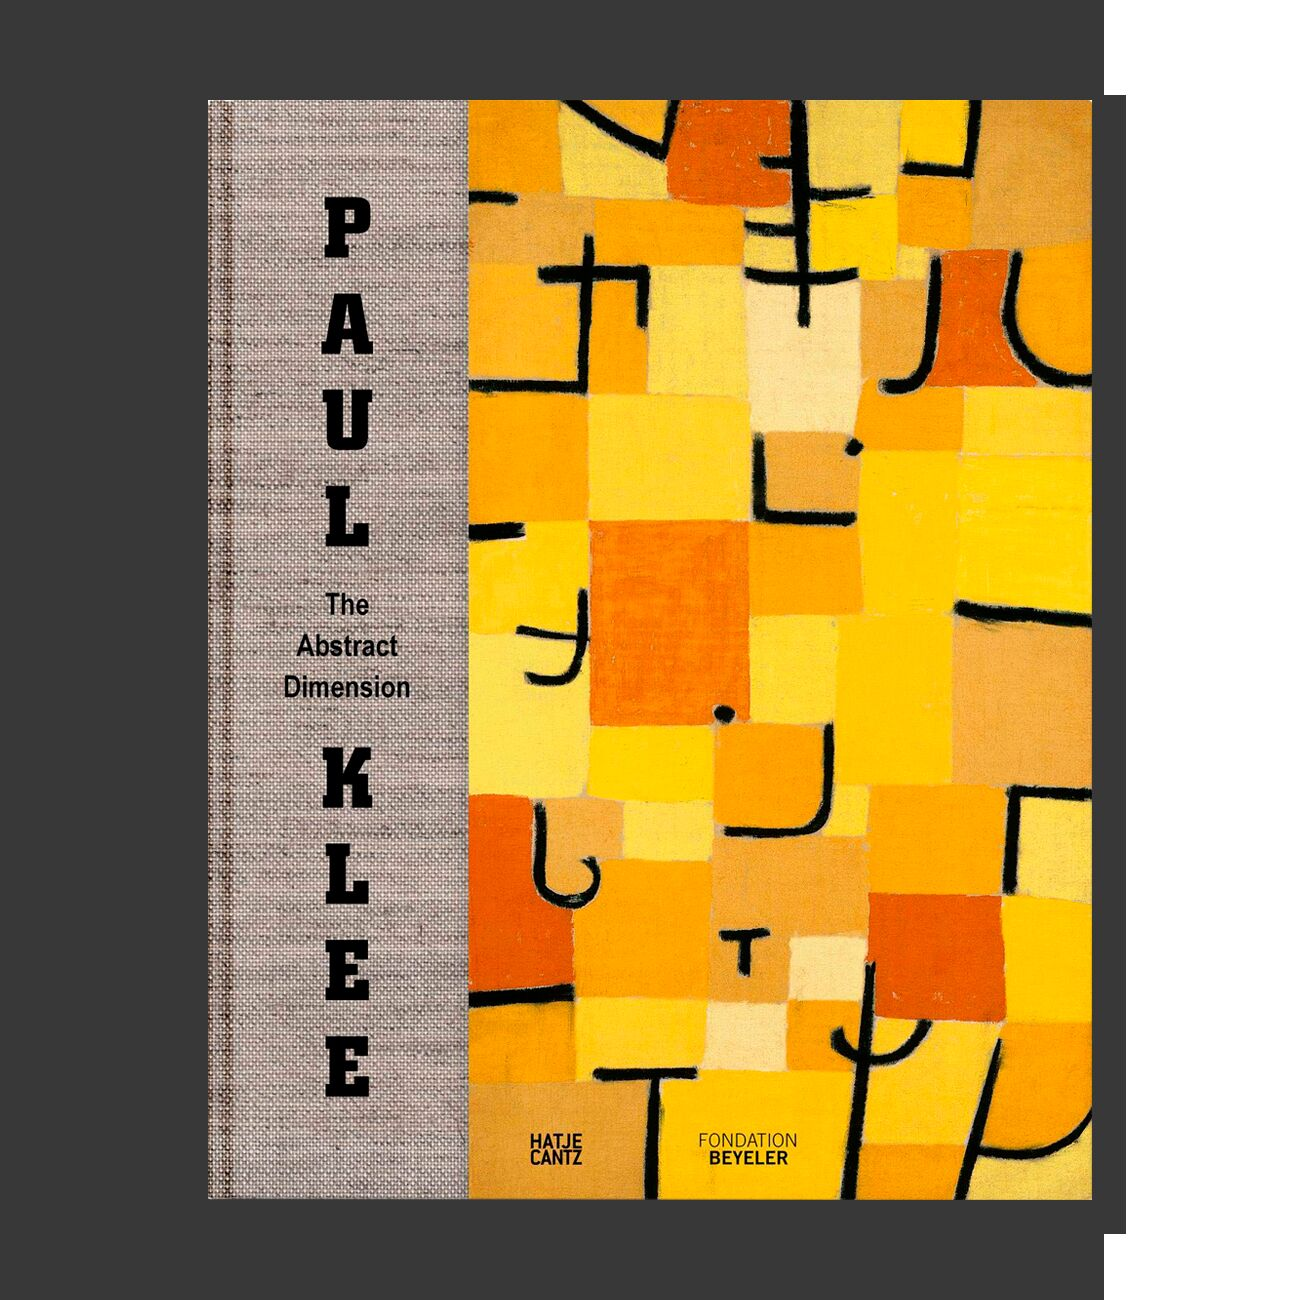 Paul Klee: The Abstract Dimension